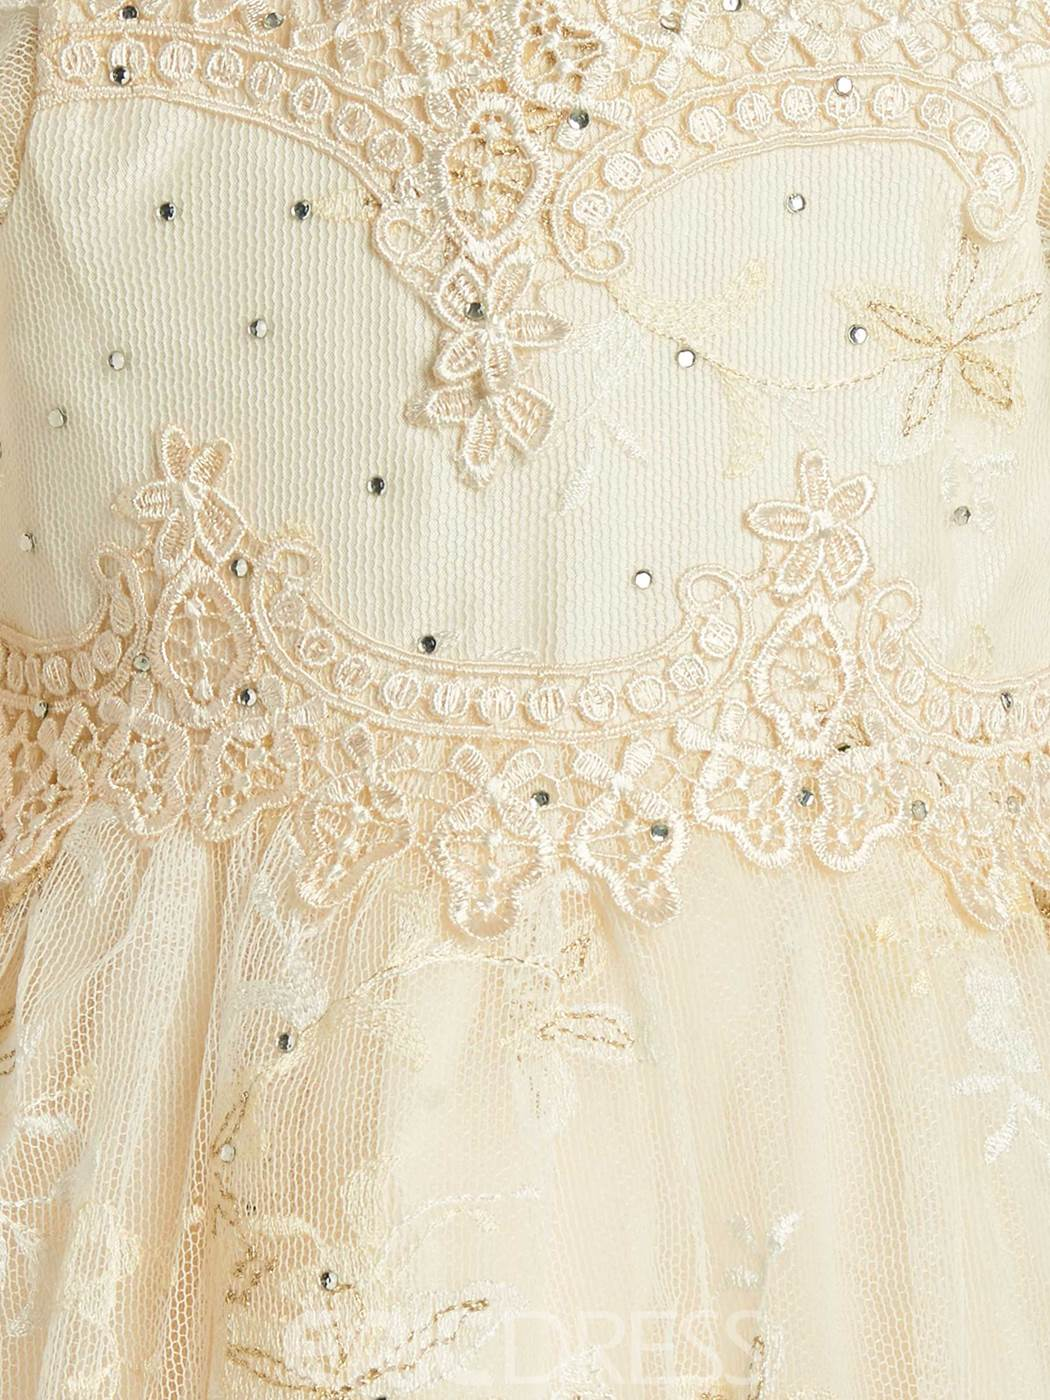 Ericdress Luxury Stunning Lace Tulle Baptism Christening Gown for Girls